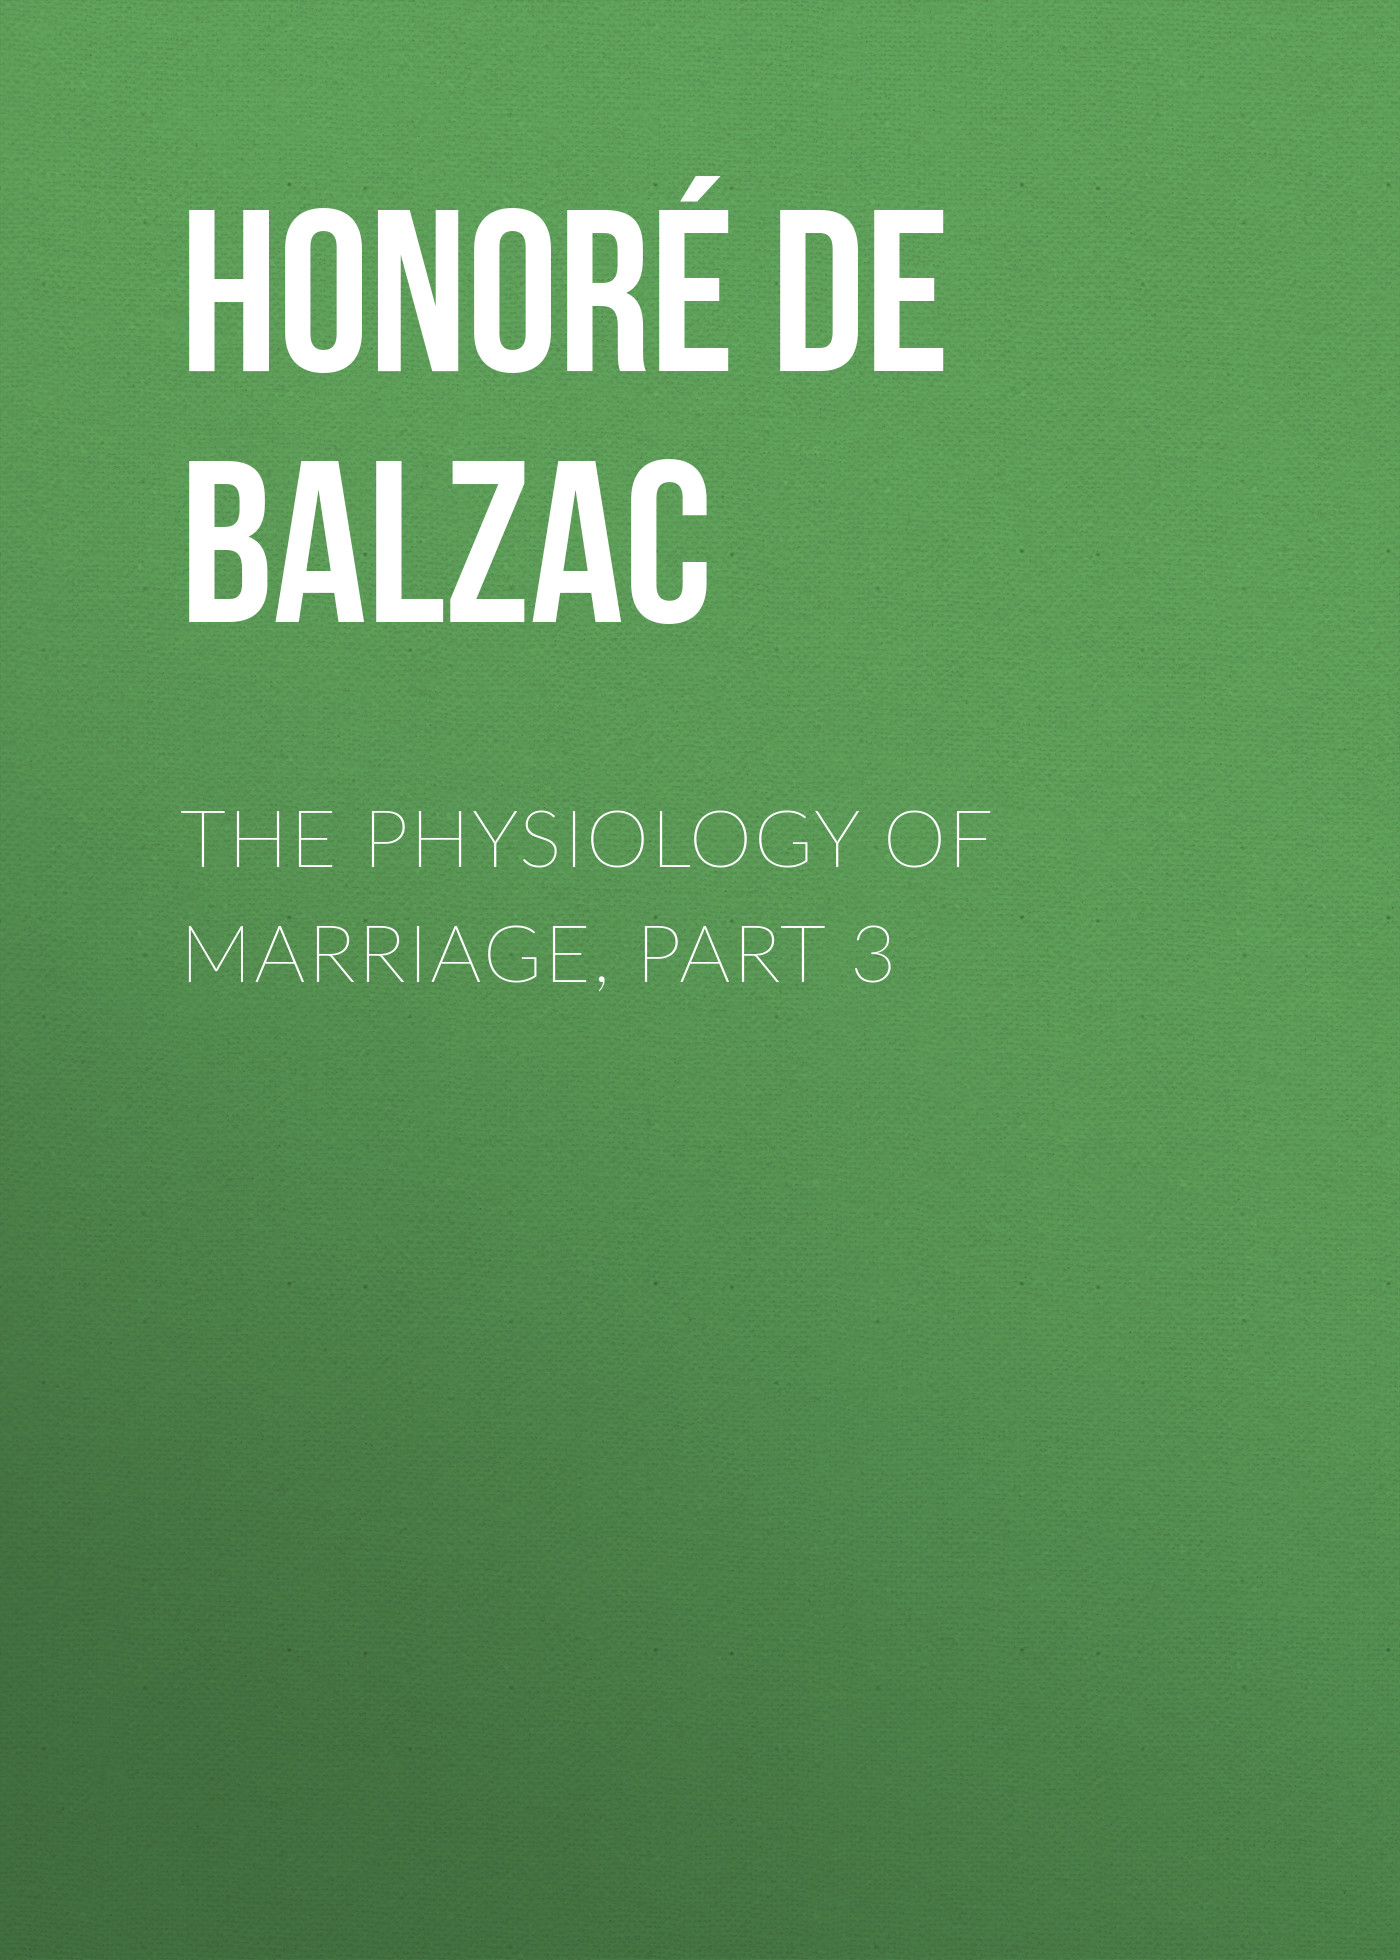 Оноре де Бальзак The Physiology of Marriage, Part 3 marriage of the greens